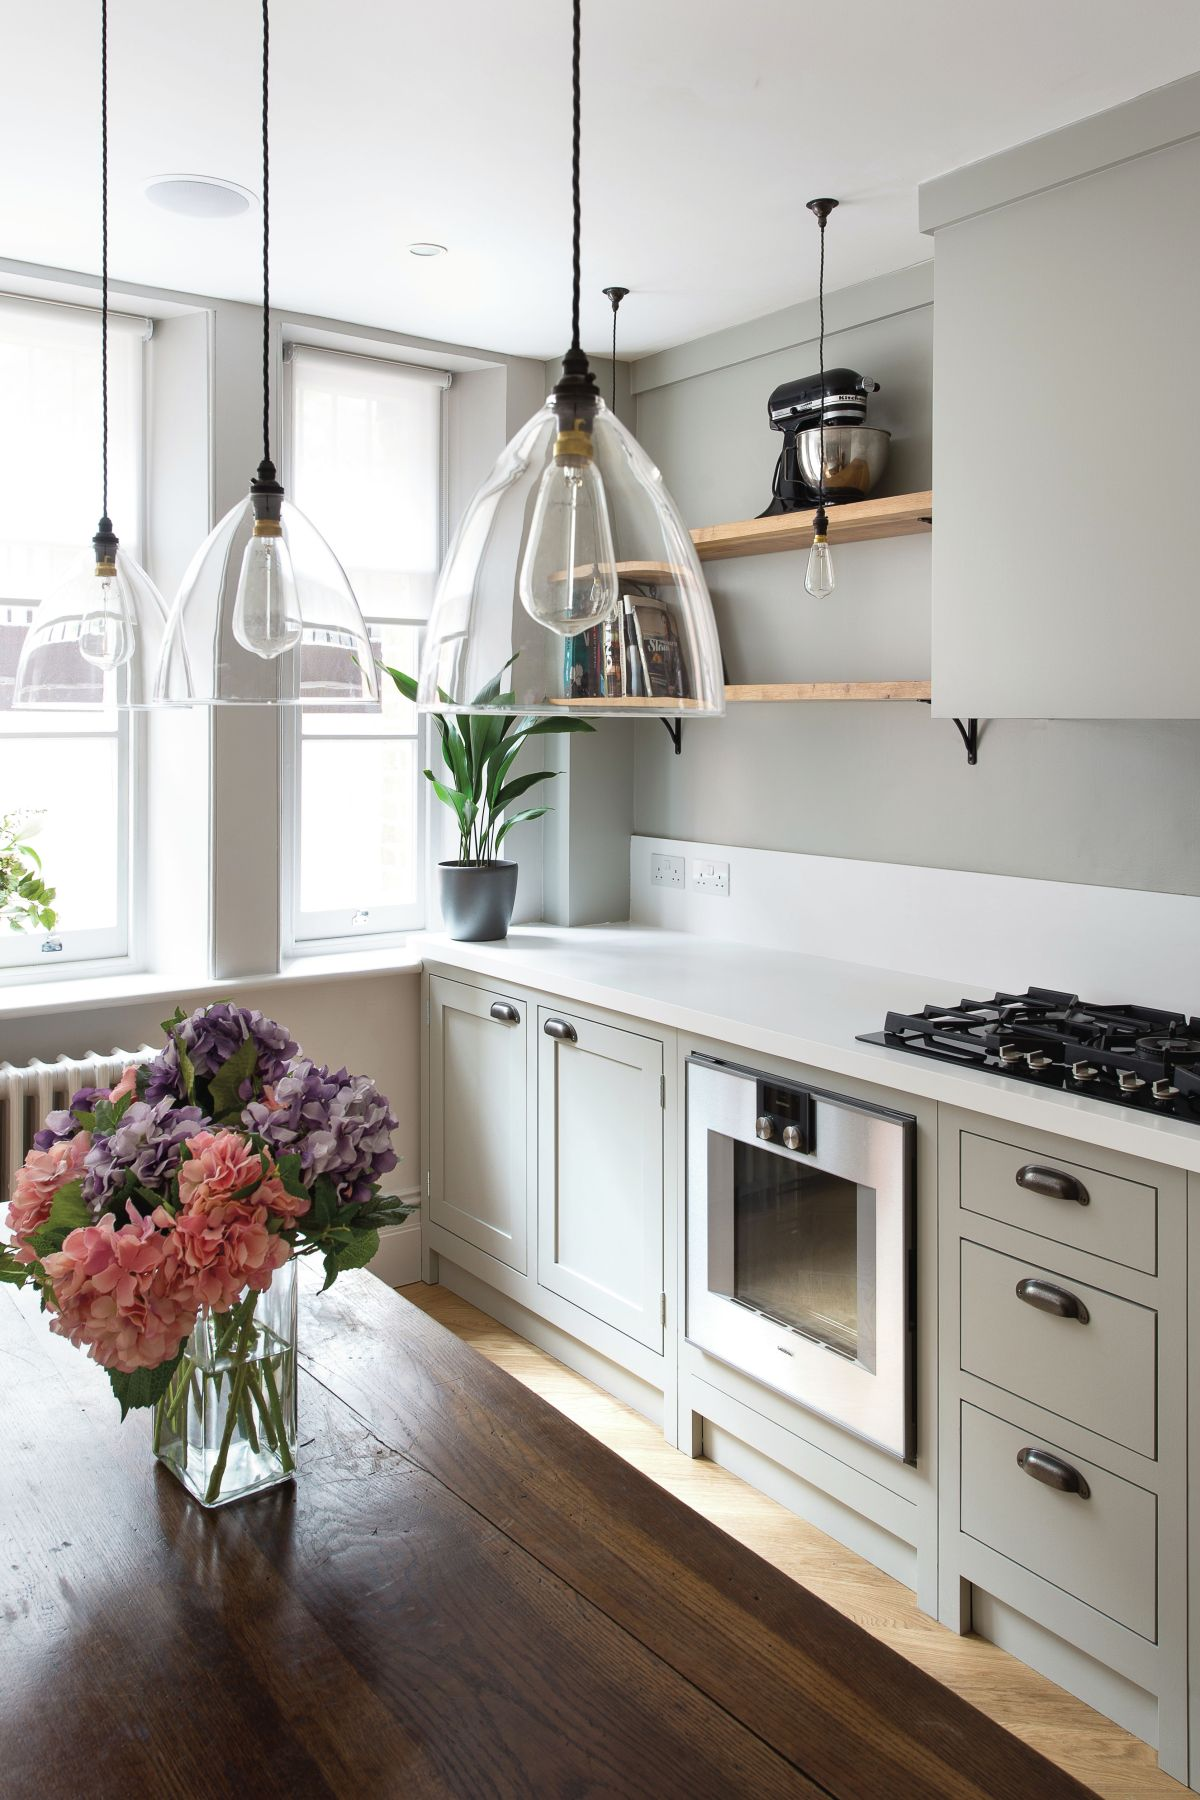 Kitchens on a budget: 17 ways to design a stylish space | Real Homes